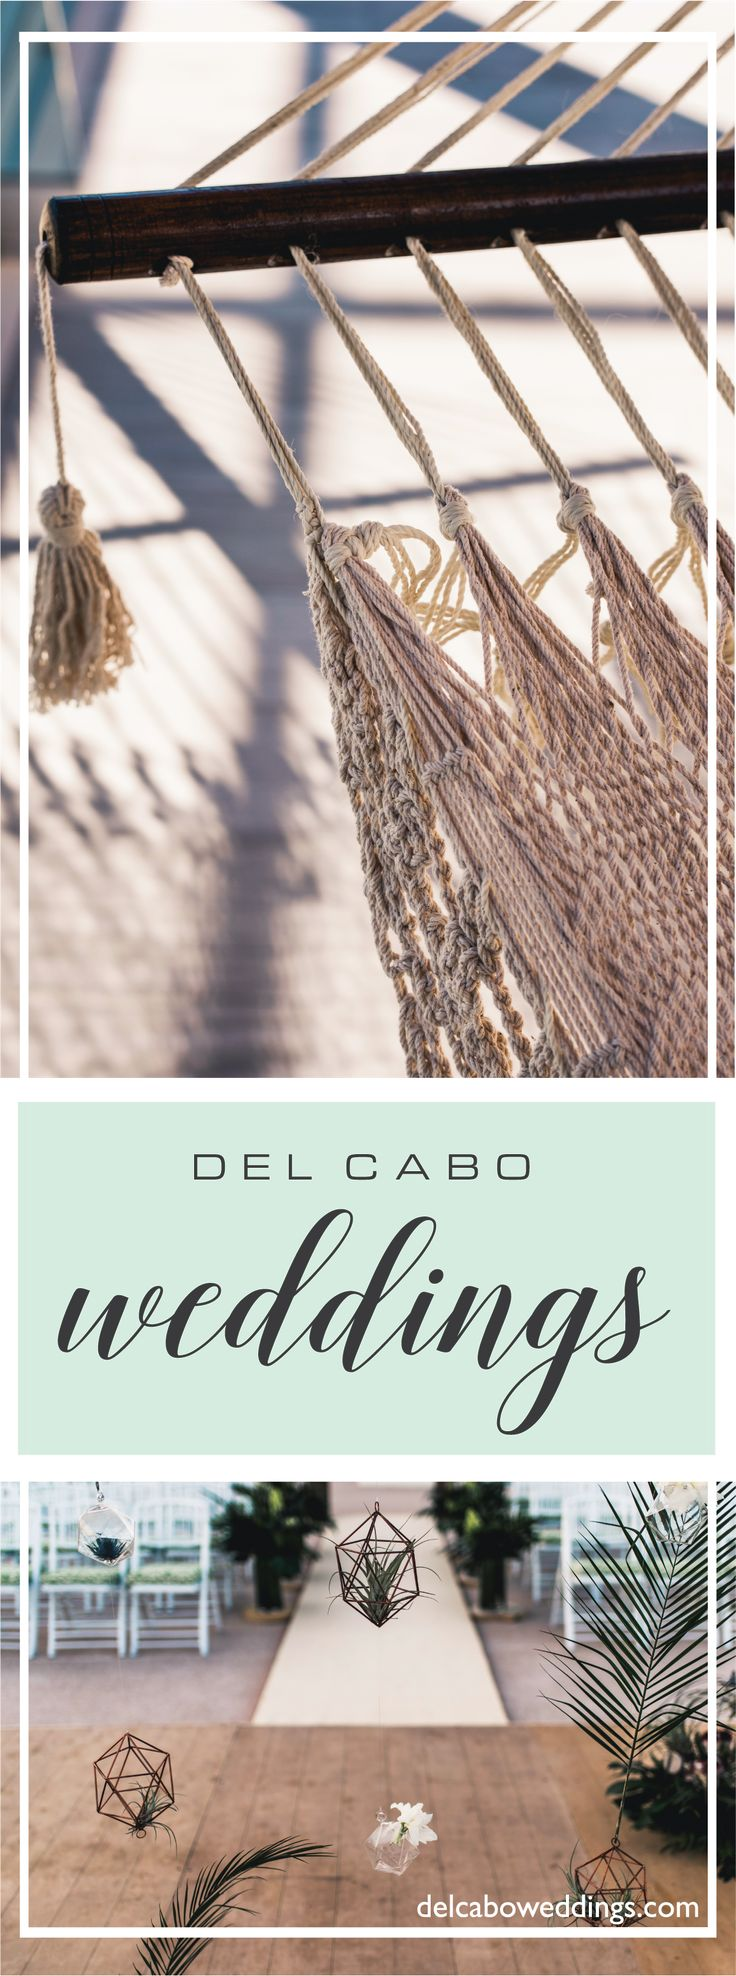 Balanced details and decoration for your organic wedding. At Del Cabo Weddings we look at the smallest details to make your dream wedding come true! Click on the image and visit our website!